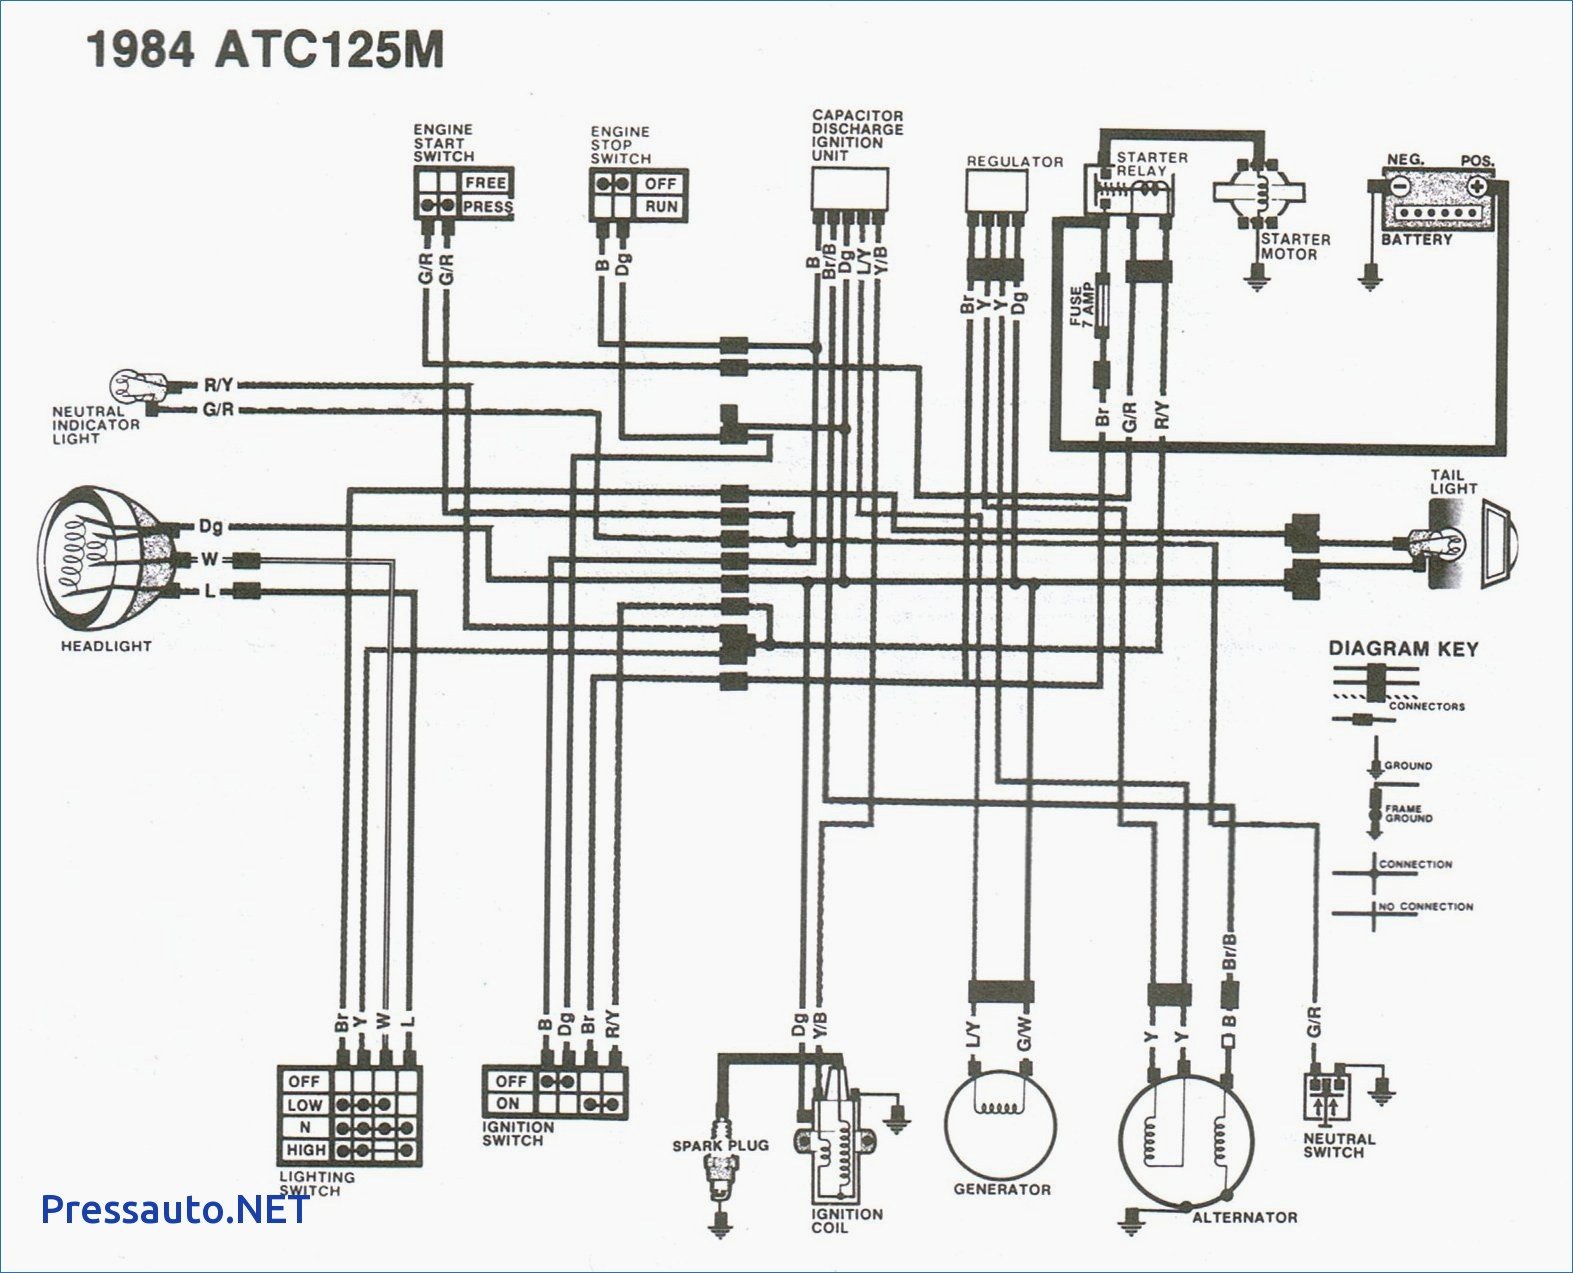 Wiring Diagram For Honda 125m